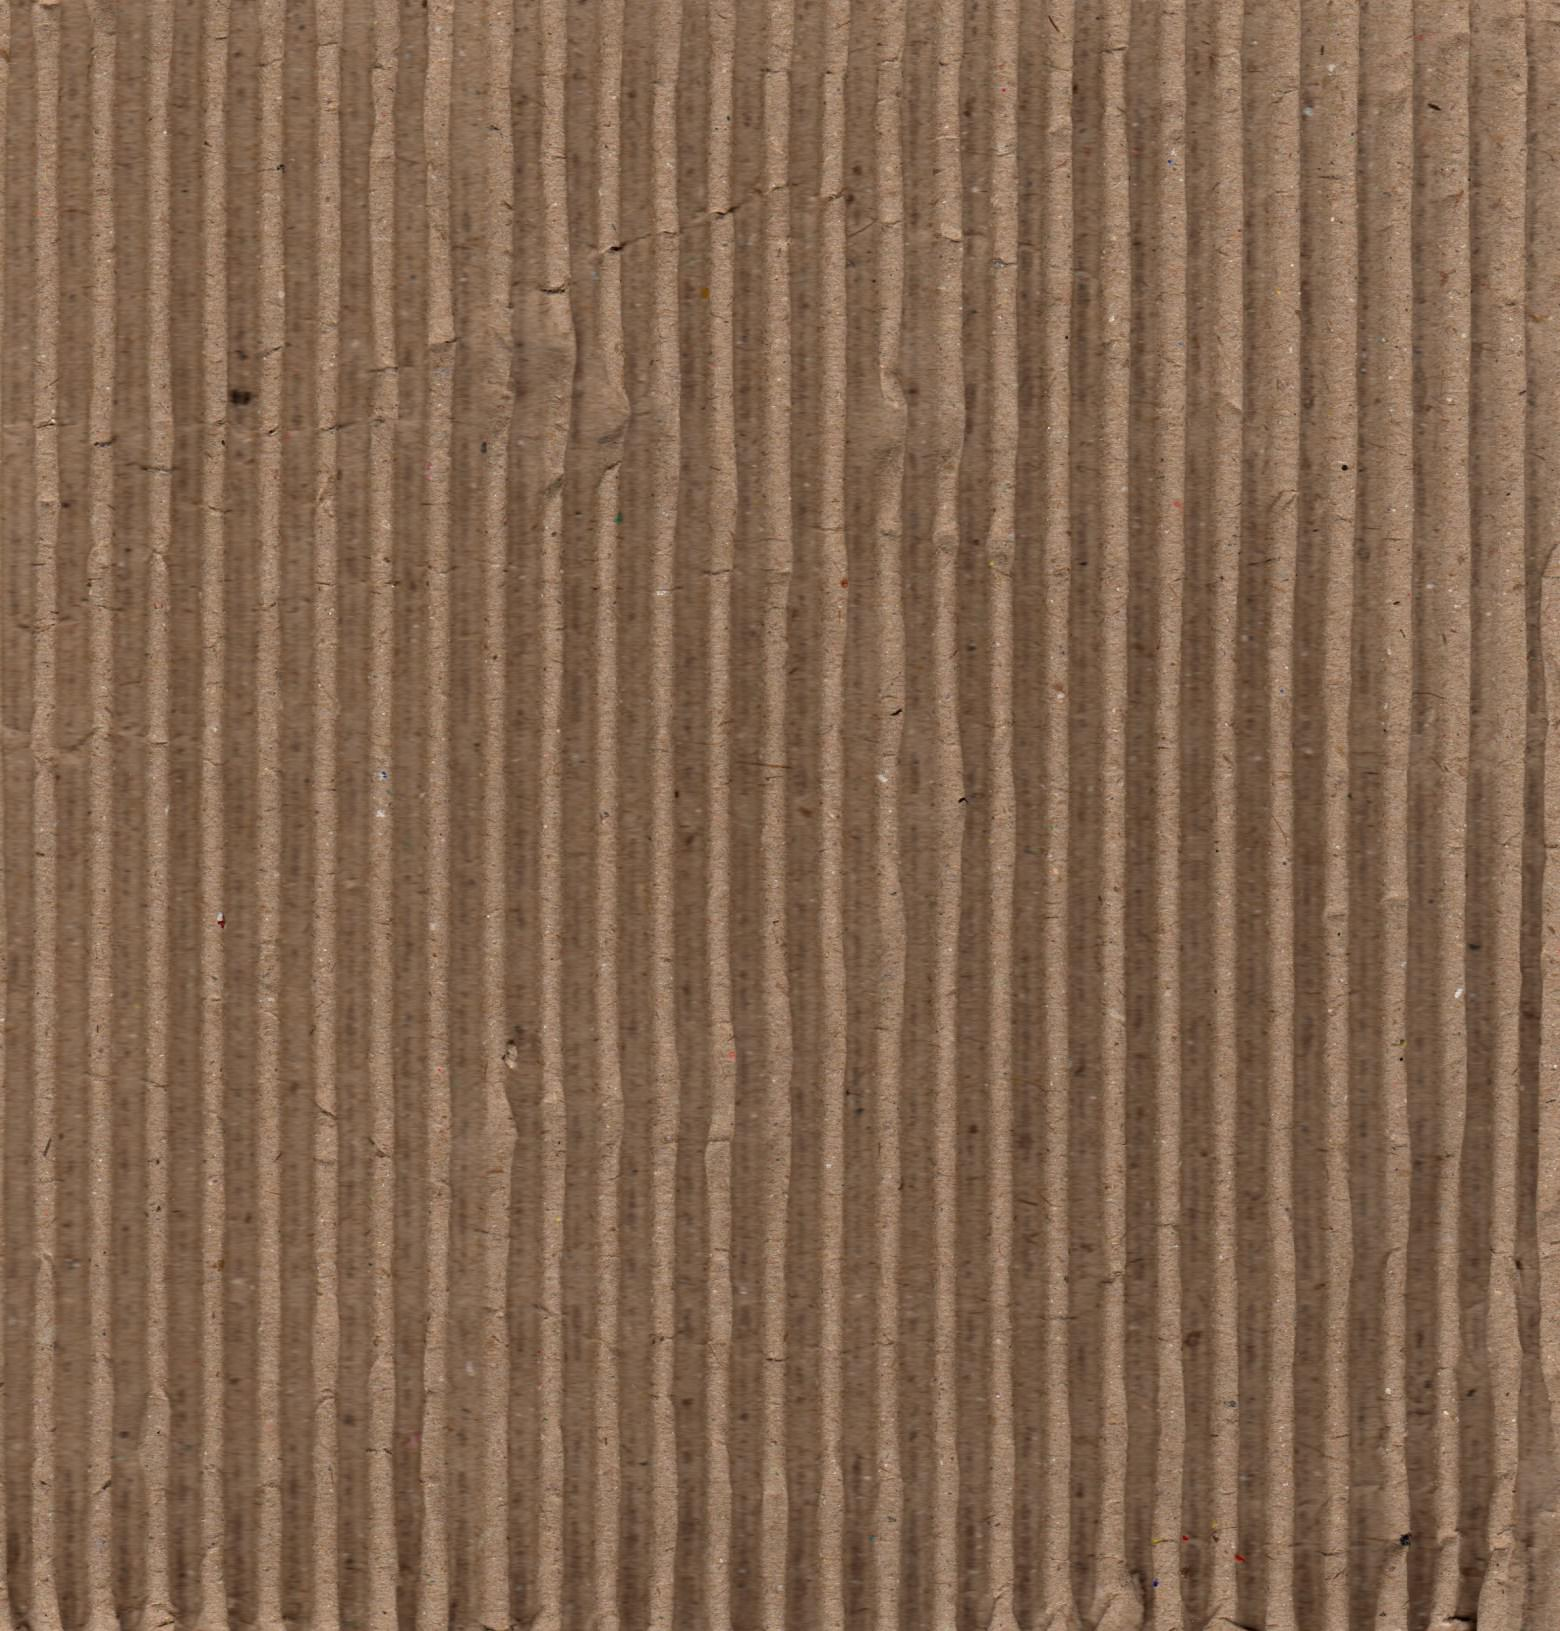 High Res Brown Cardboard Texture